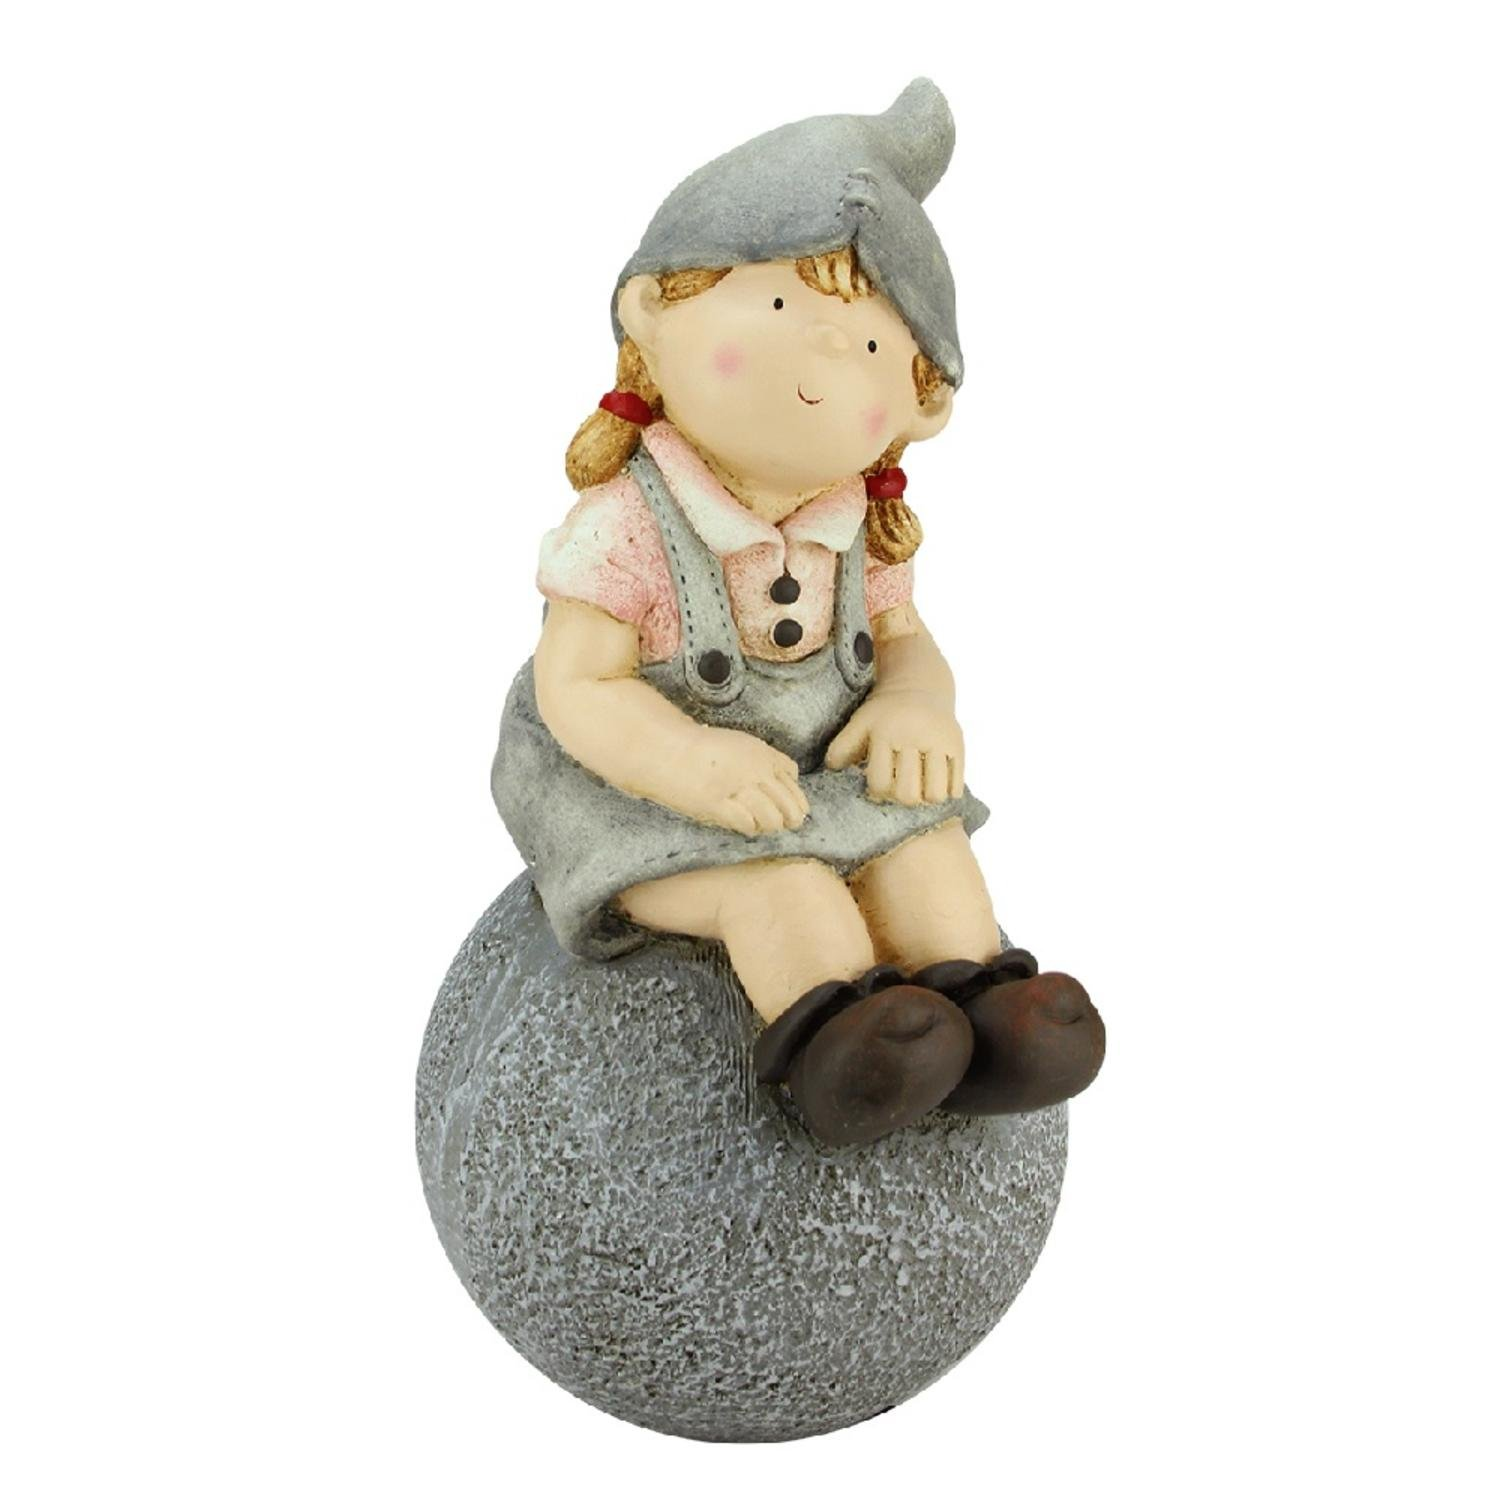 Northlight CB64986 Young Girl Gnome Sitting on Ball Spring Outdoor Garden Patio Figure Statuary and Fountains, 16'', Gray